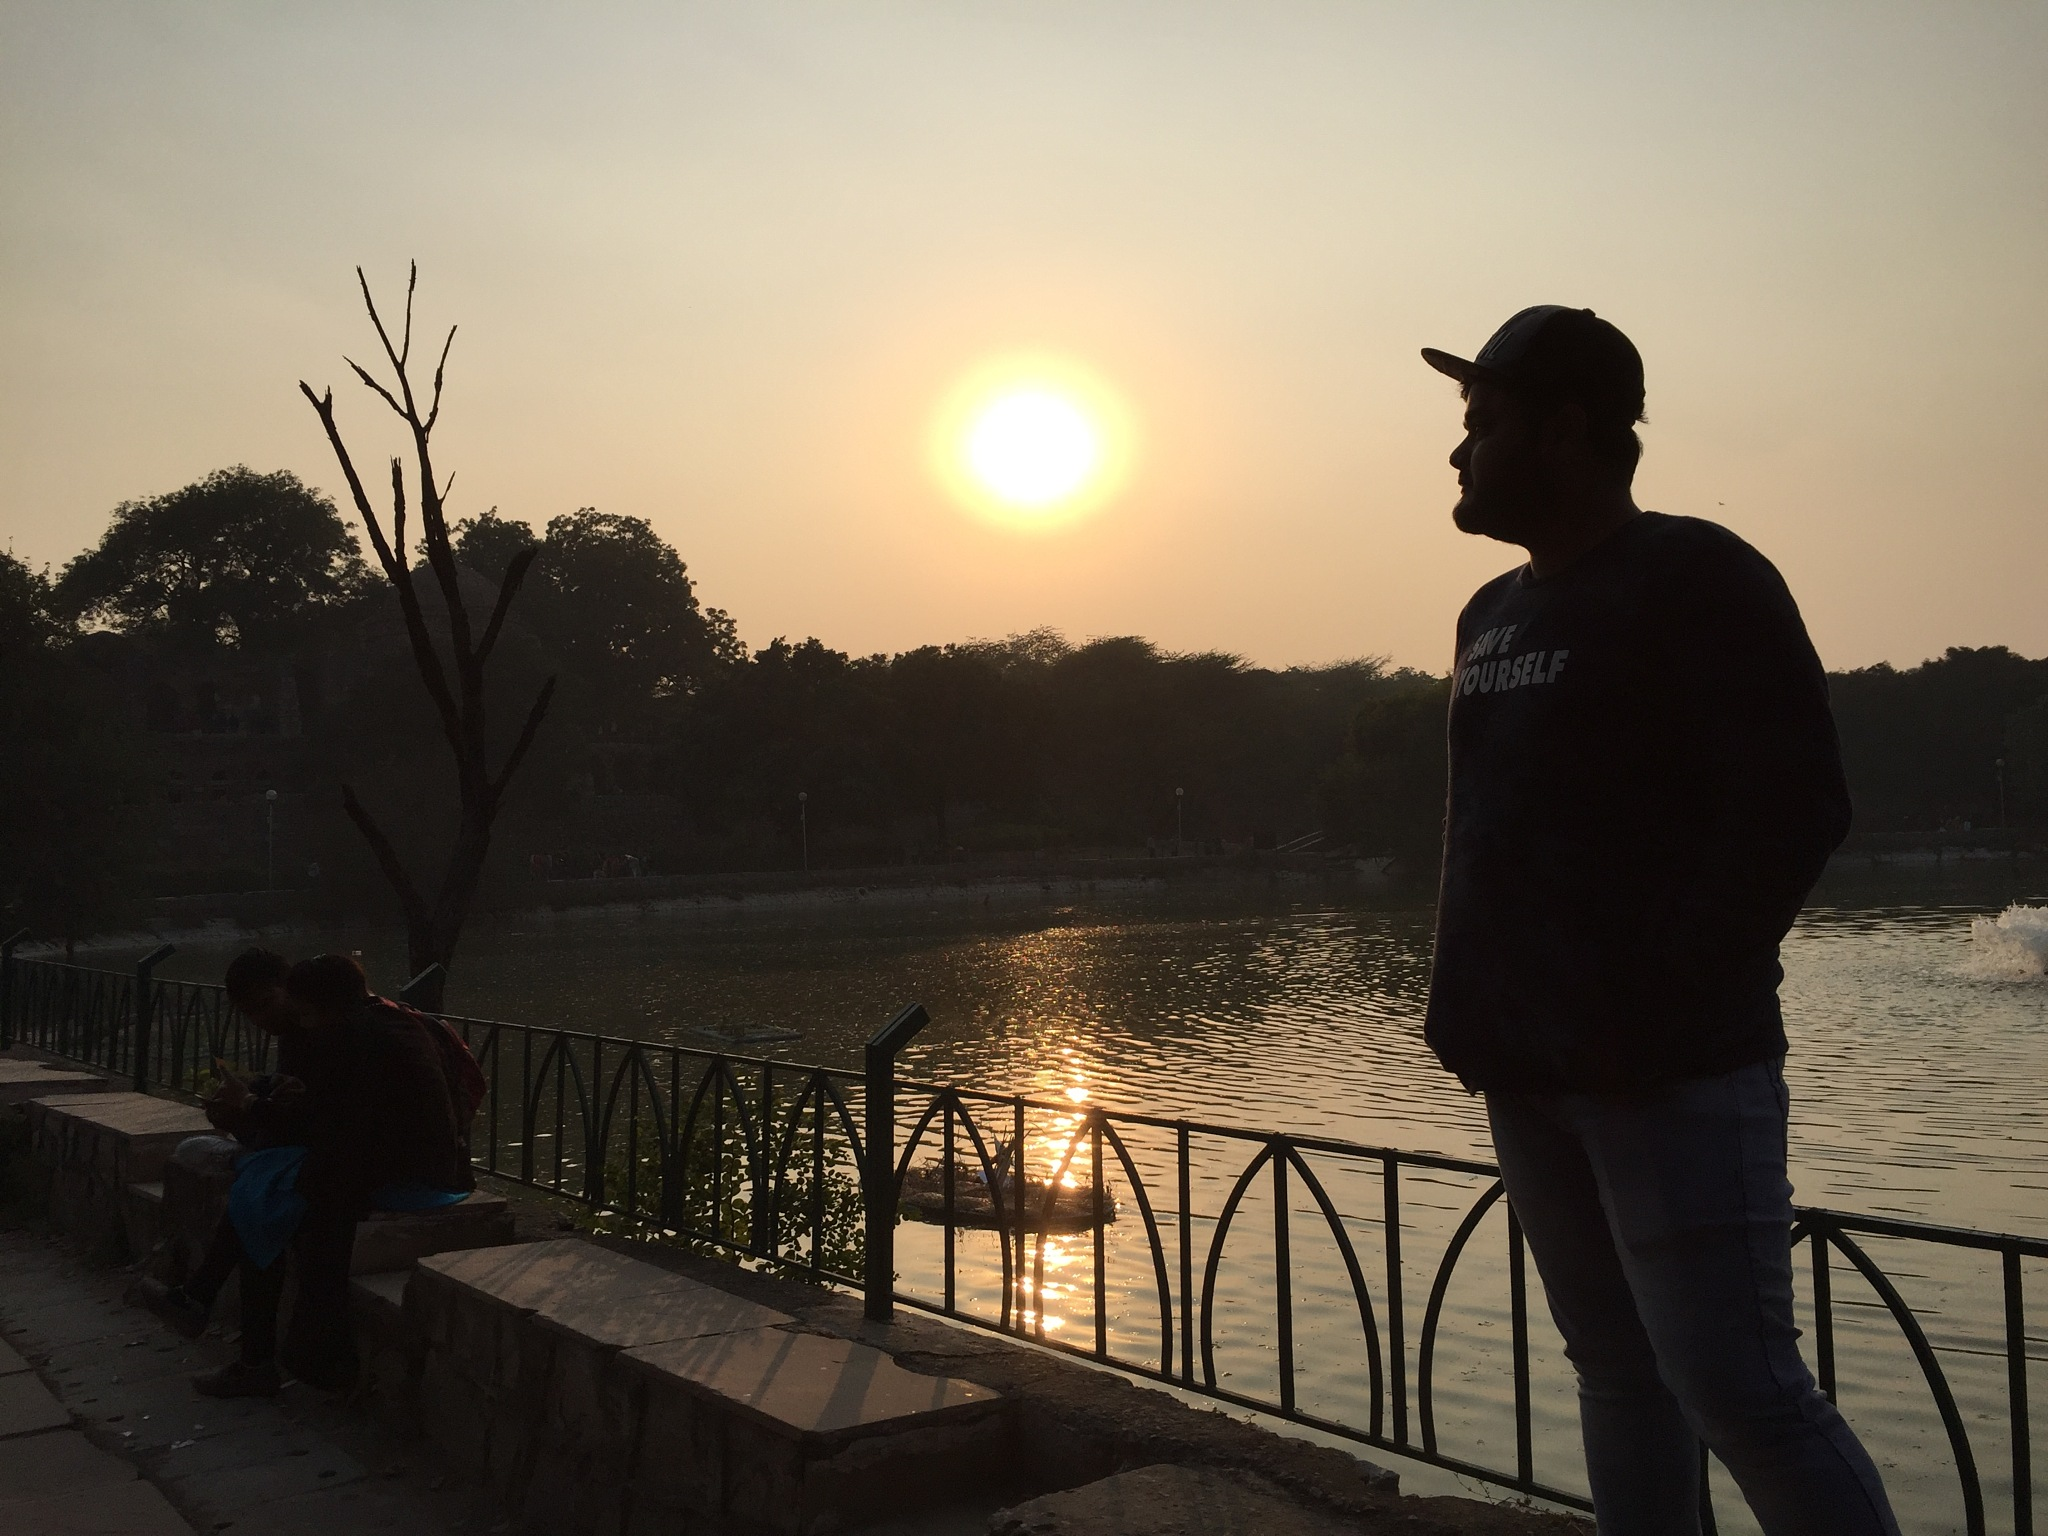 Sunset  by Aman Verma